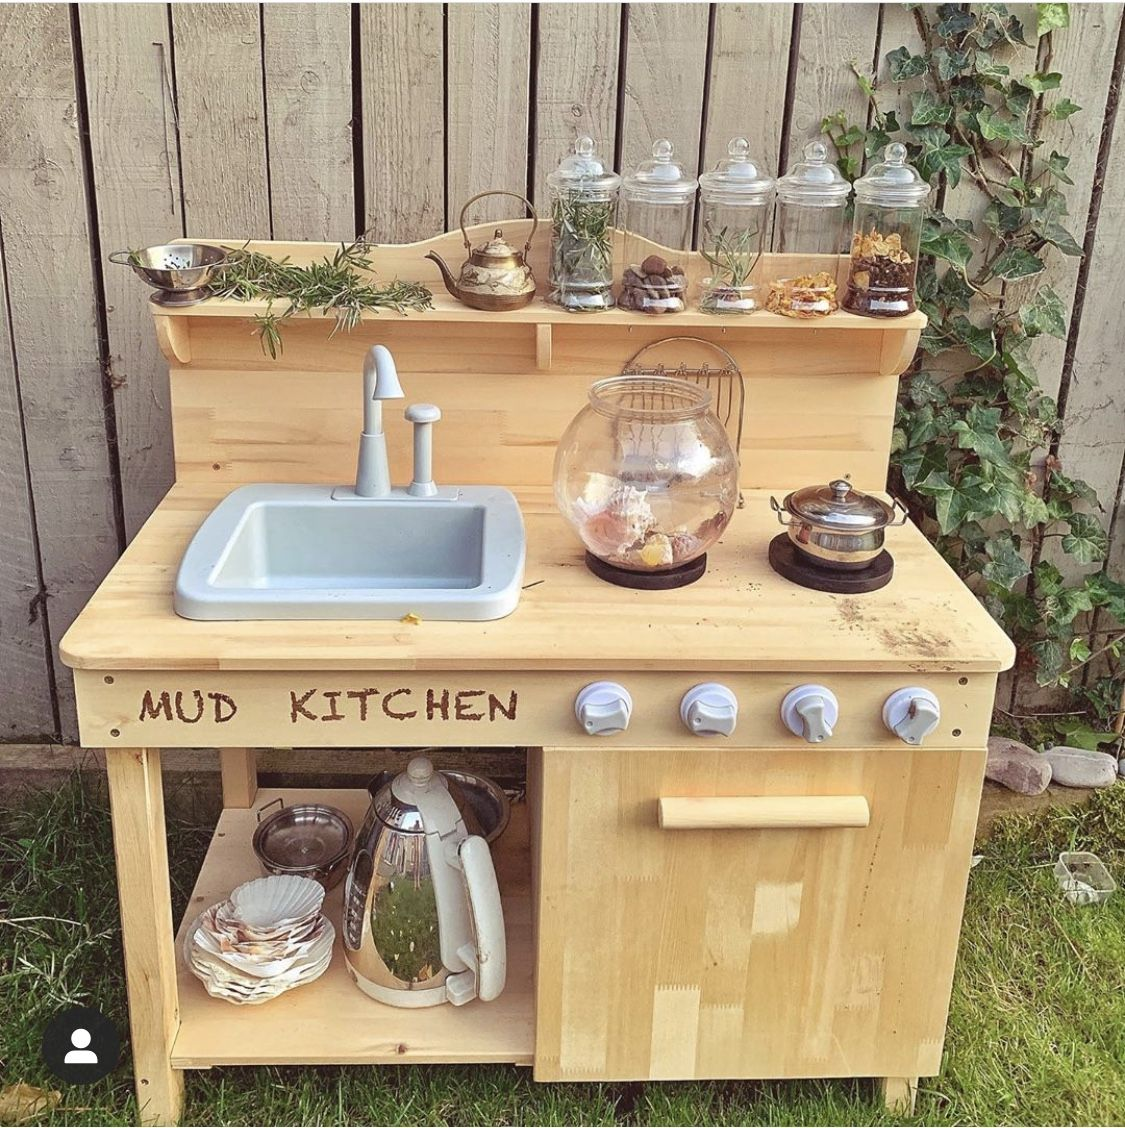 Mud Kitchen For Outdoor Learning In 2020 Mud Kitchen Outdoor Play Outdoor Learning